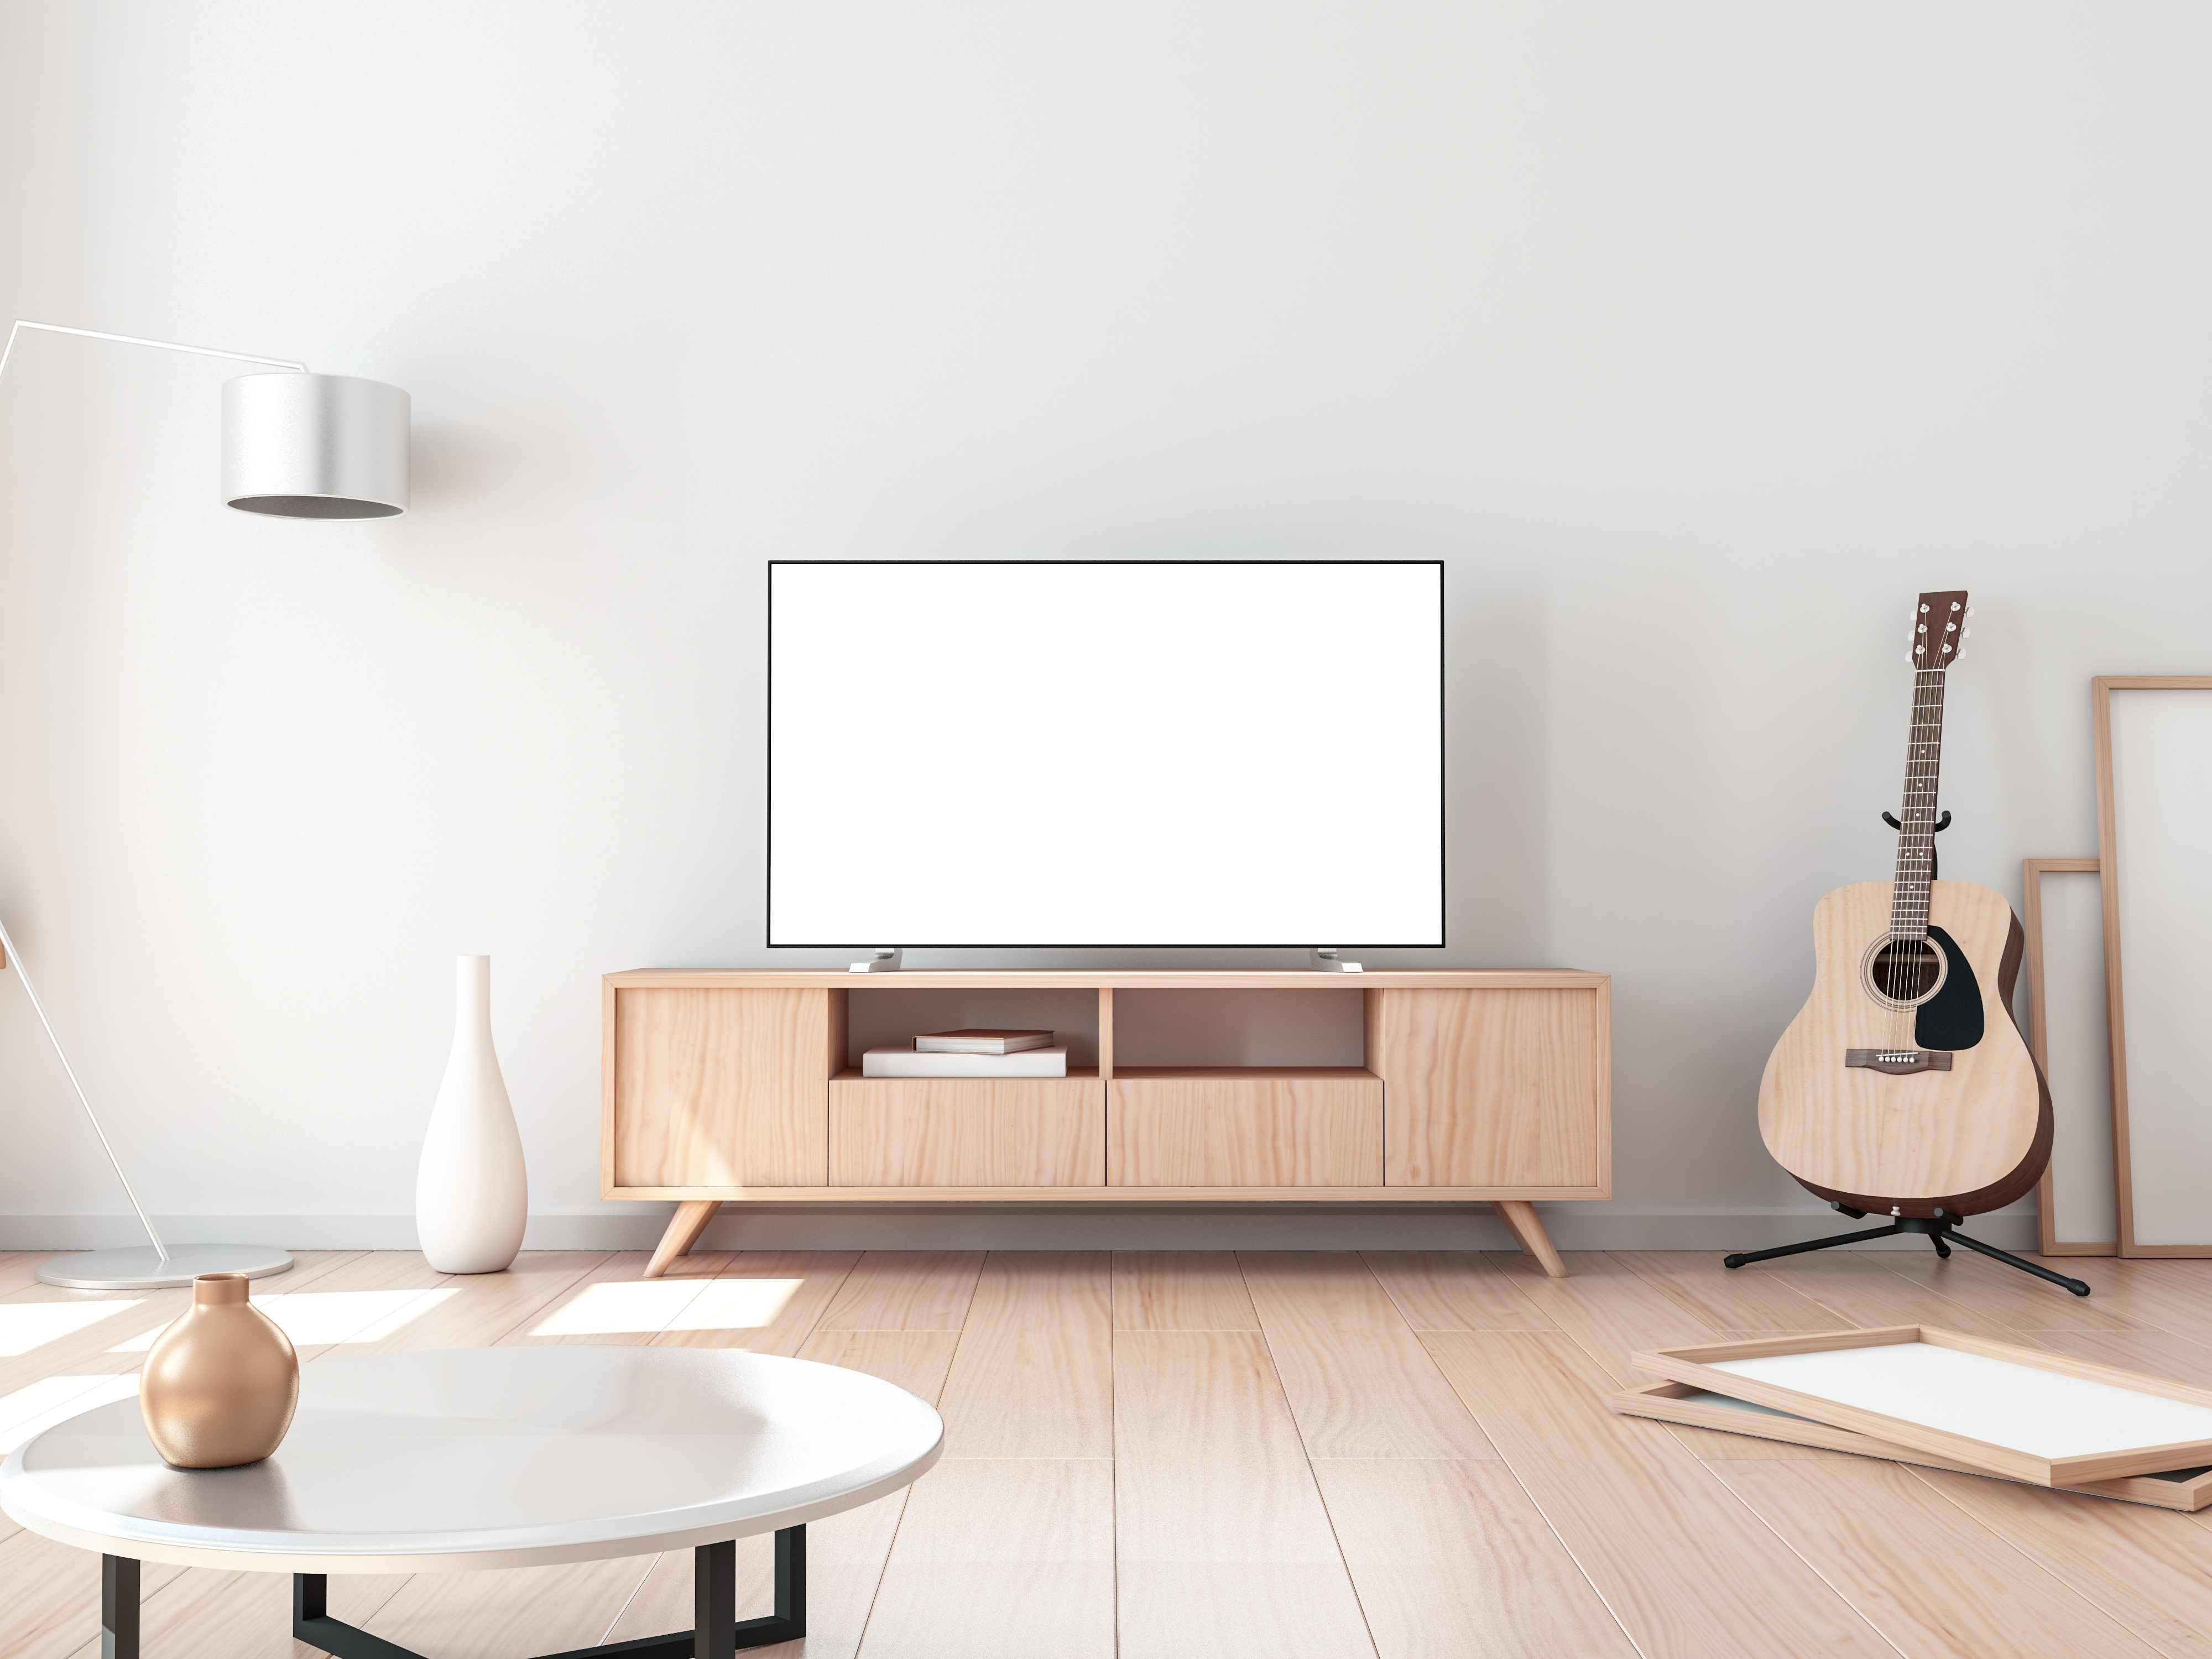 A living room with a television and a guitar